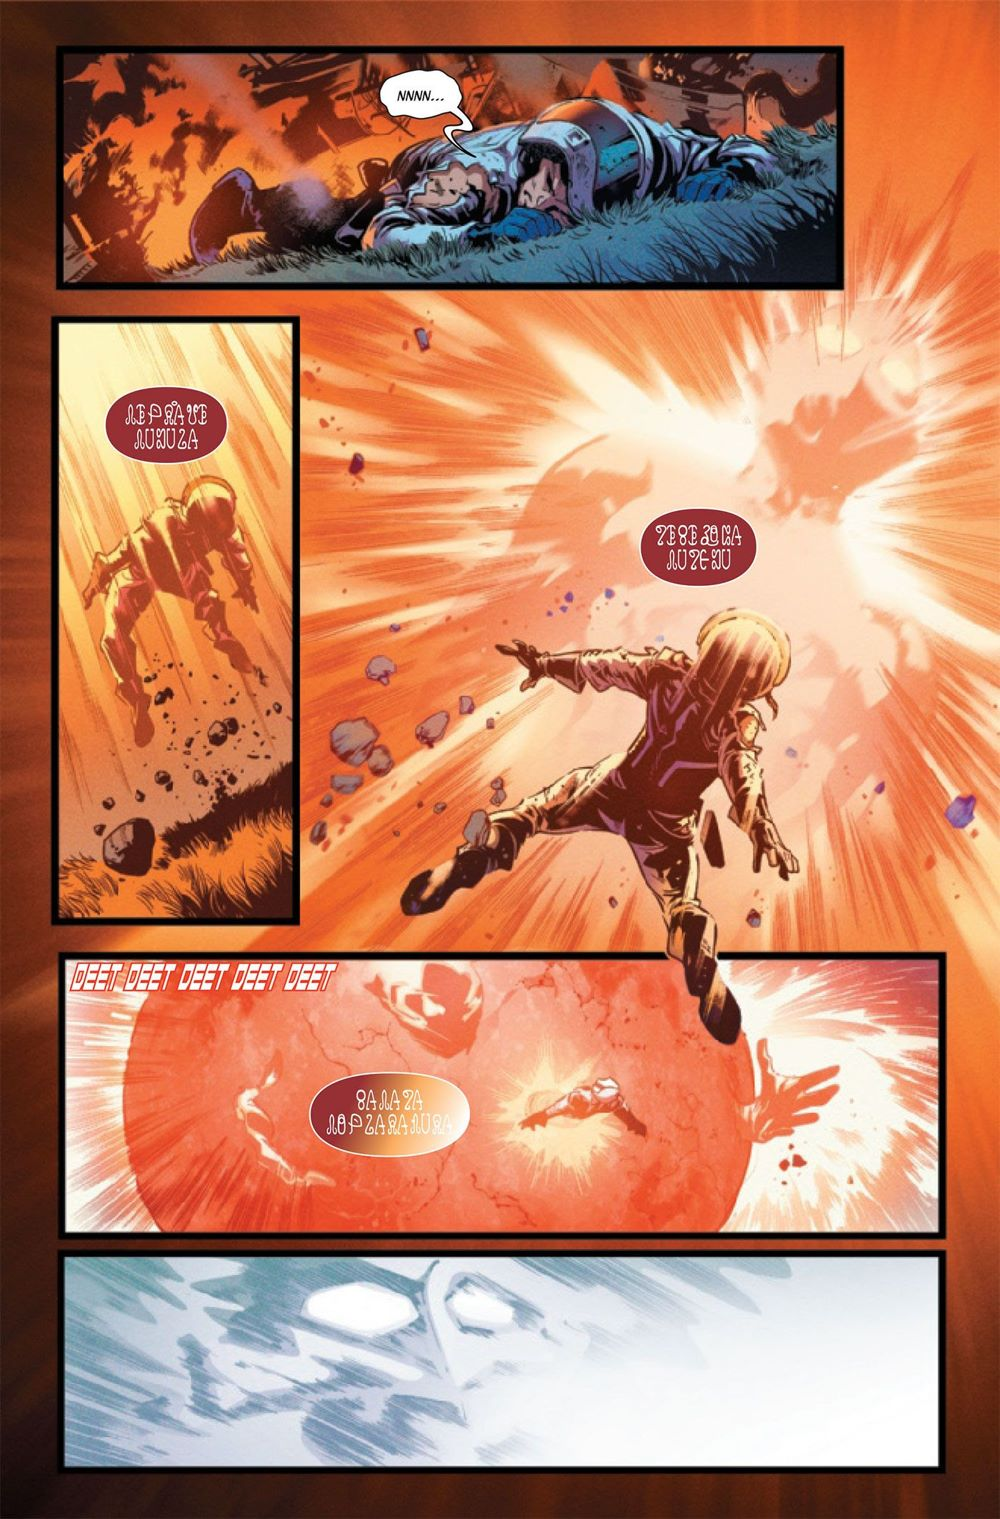 ULTRAMANRISE2020001-Preview-4 ComicList Previews: THE RISE OF ULTRAMAN #1